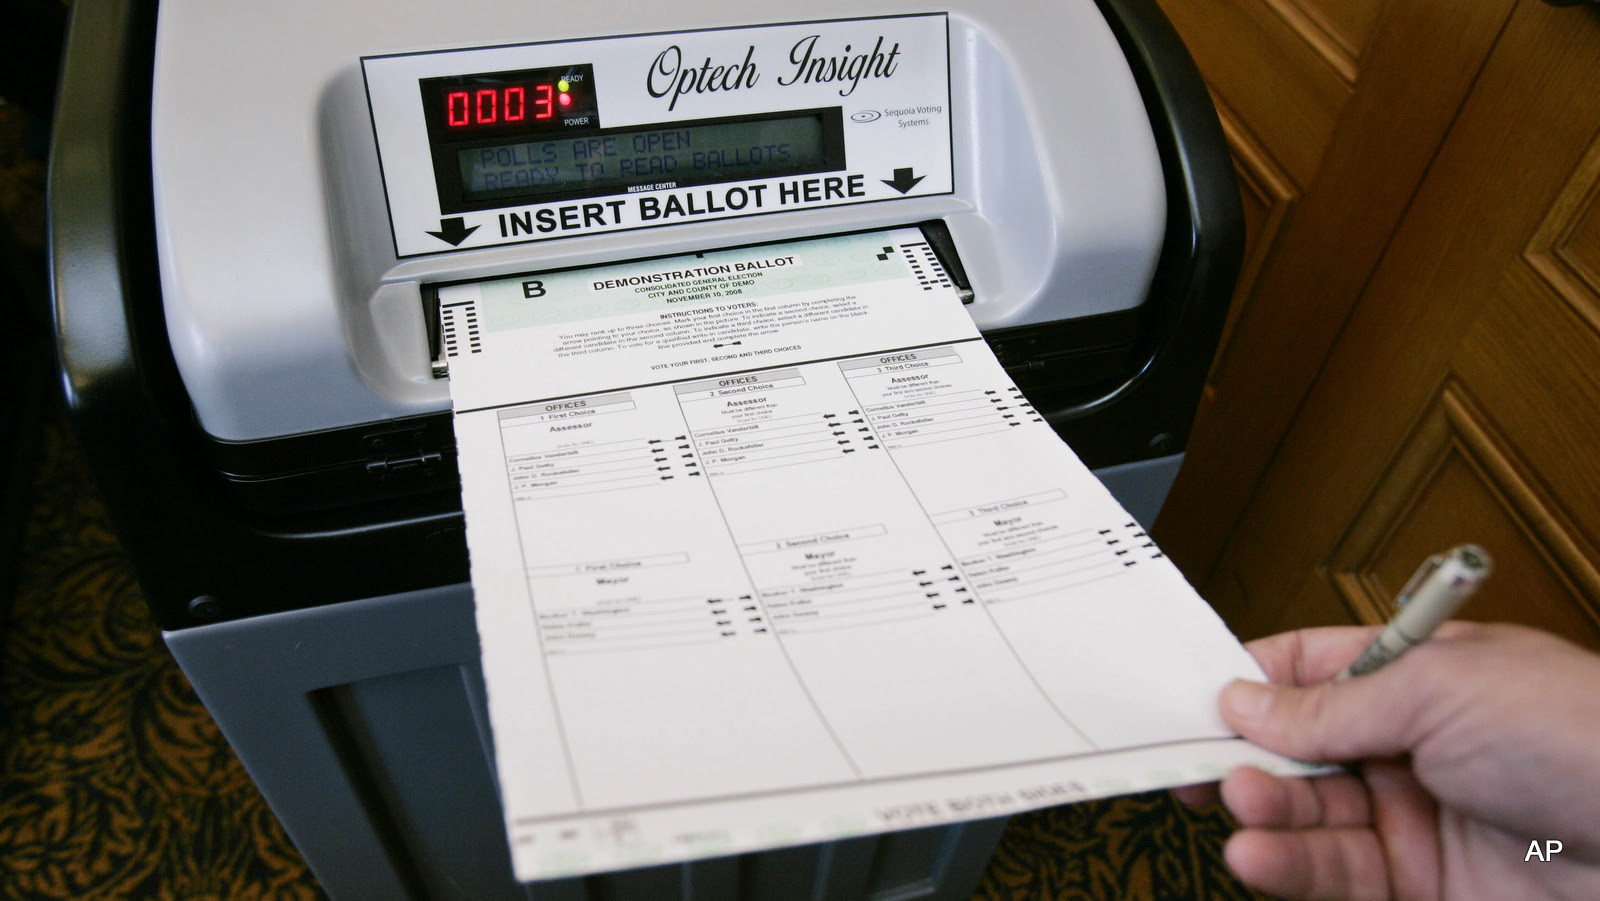 A sales executive with Sequoia Voting Systems demonstrates inserting a ballot into their electronic voting system for officials in San Francisco, Dec. 5, 2007